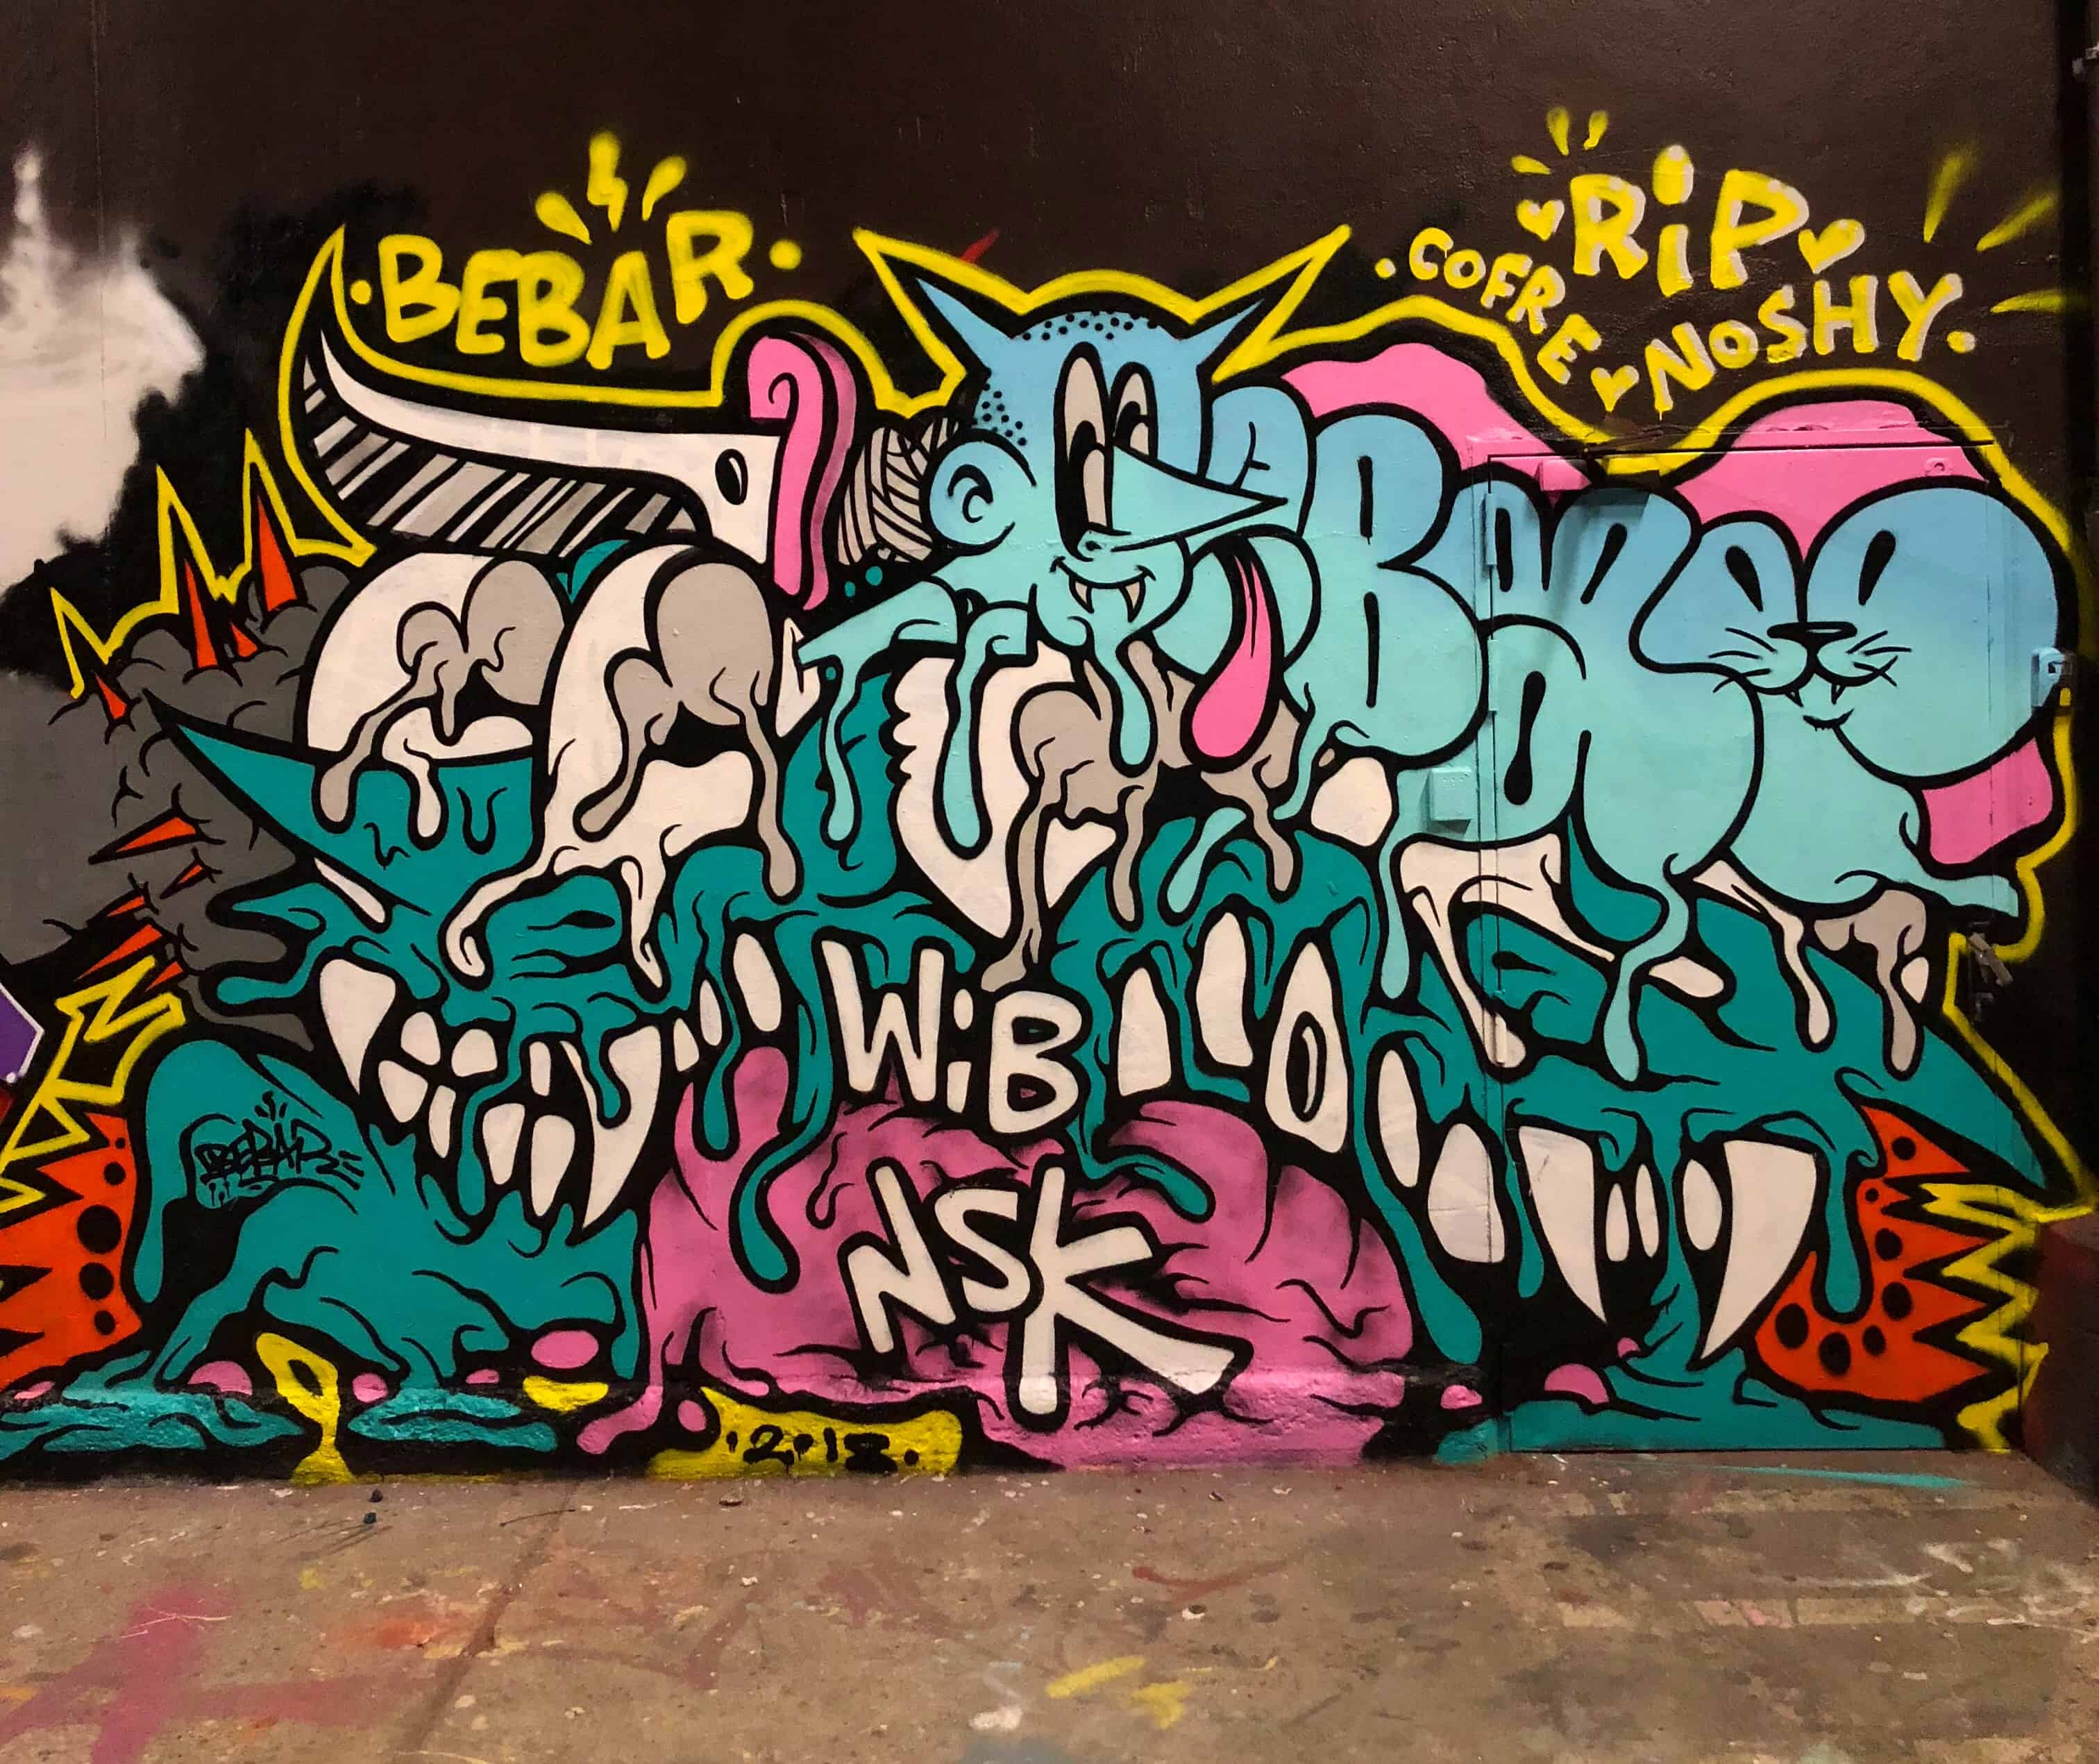 BEBAR GRAFFITI